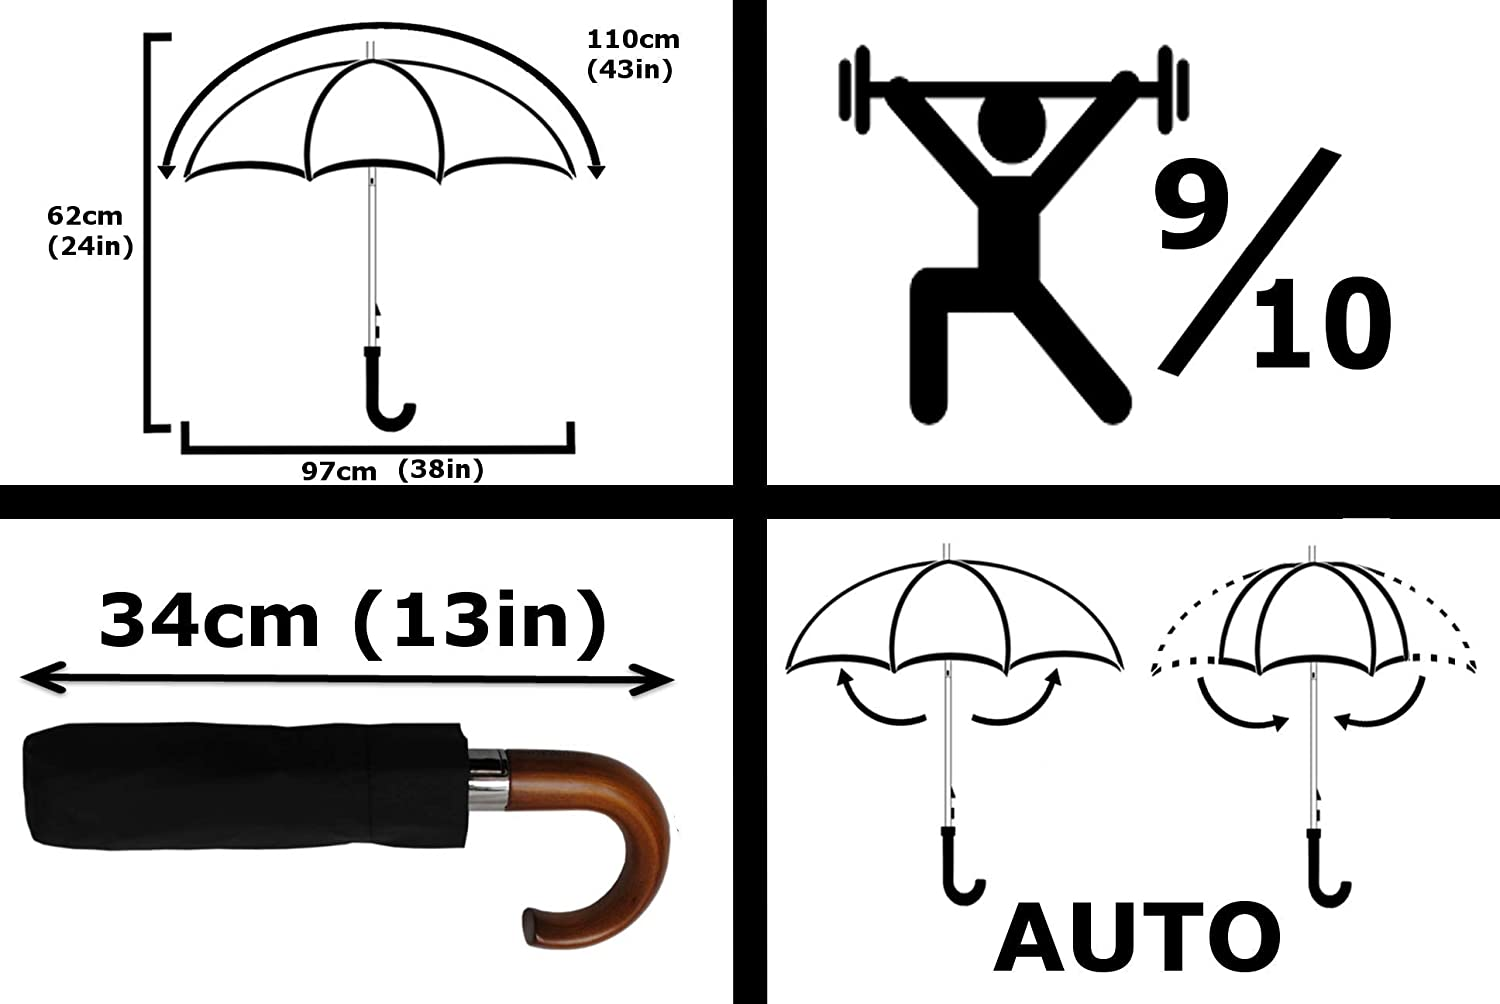 Wooden Hook Handle Solid Wood 80KPH Strong 9 Rib Reinforced Frame with Fiberglass Windproof Umbrella Compact Black Vented Double Layer Canopy Auto Open /& Close COLLAR AND CUFFS LONDON